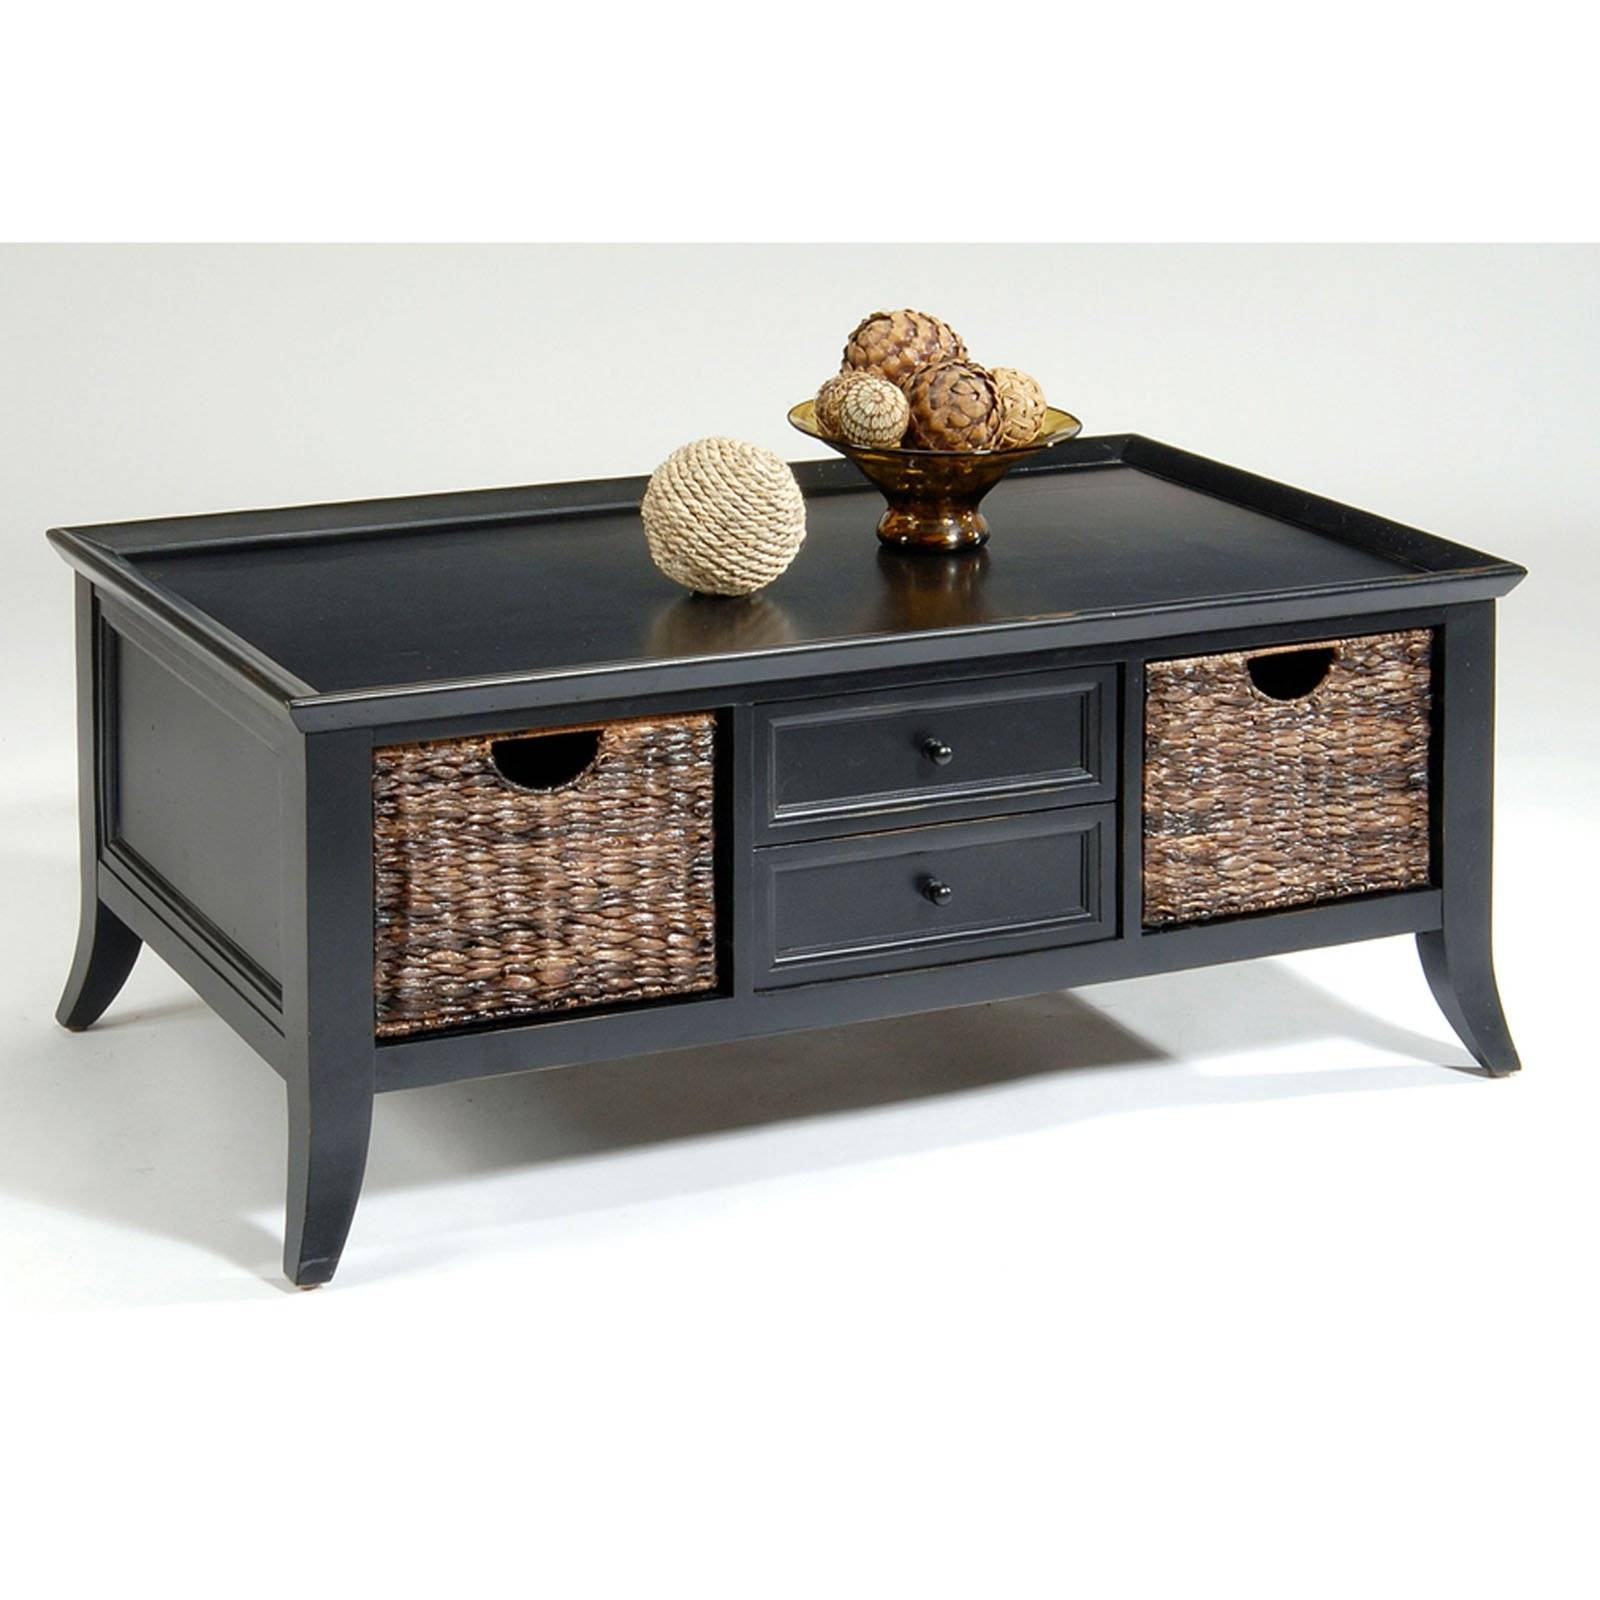 Coffee Table With Baskets / Coffee Tables / Thippo regarding Coffee Tables With Baskets Underneath (Image 7 of 30)